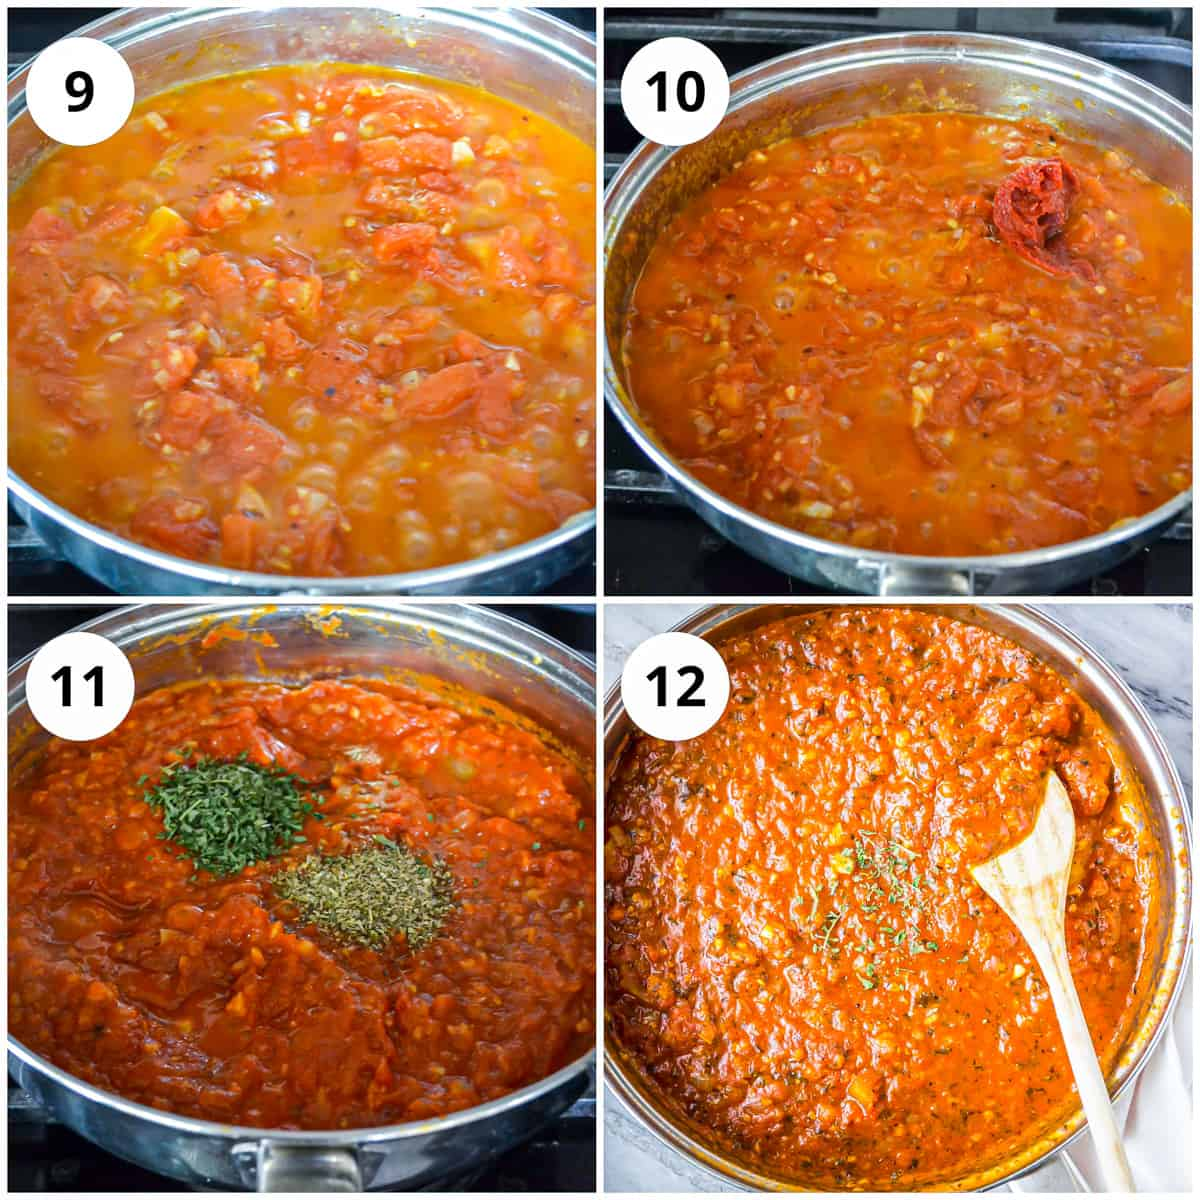 Four photos to show cooking and thickening the sauce